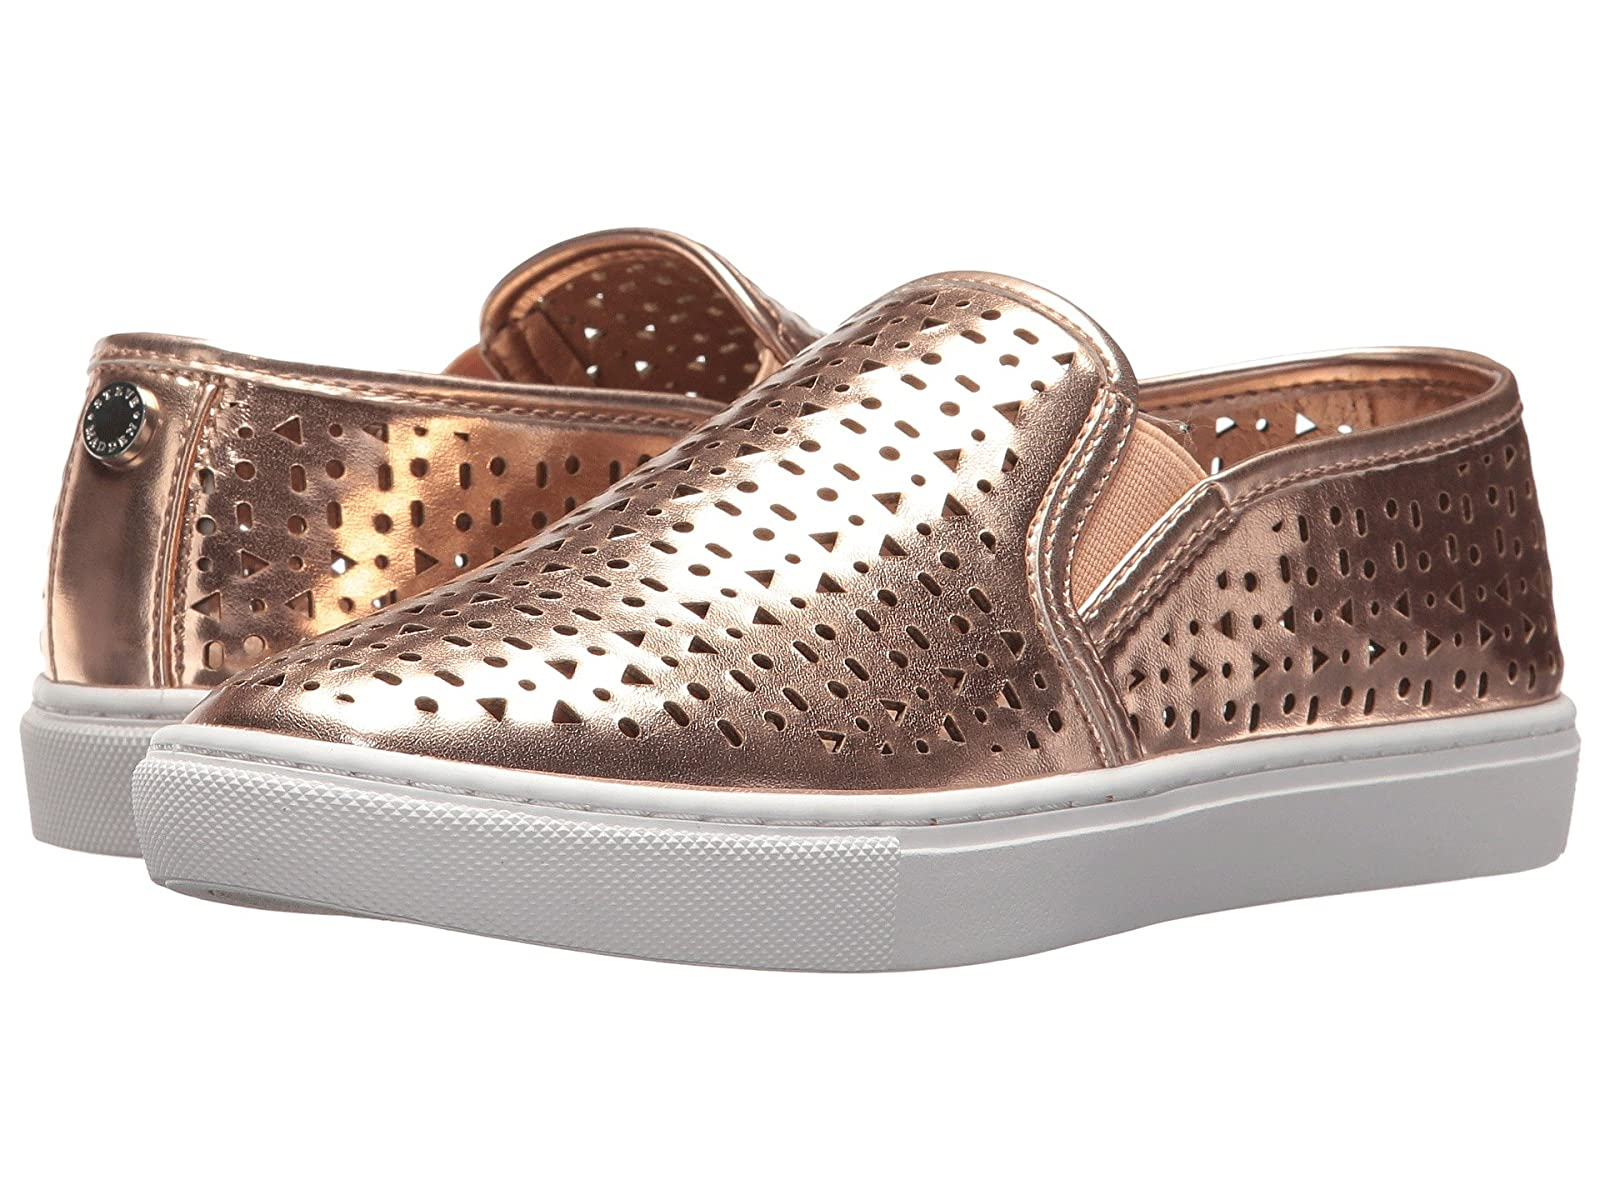 Steve Madden ExcuseCheap and distinctive eye-catching shoes